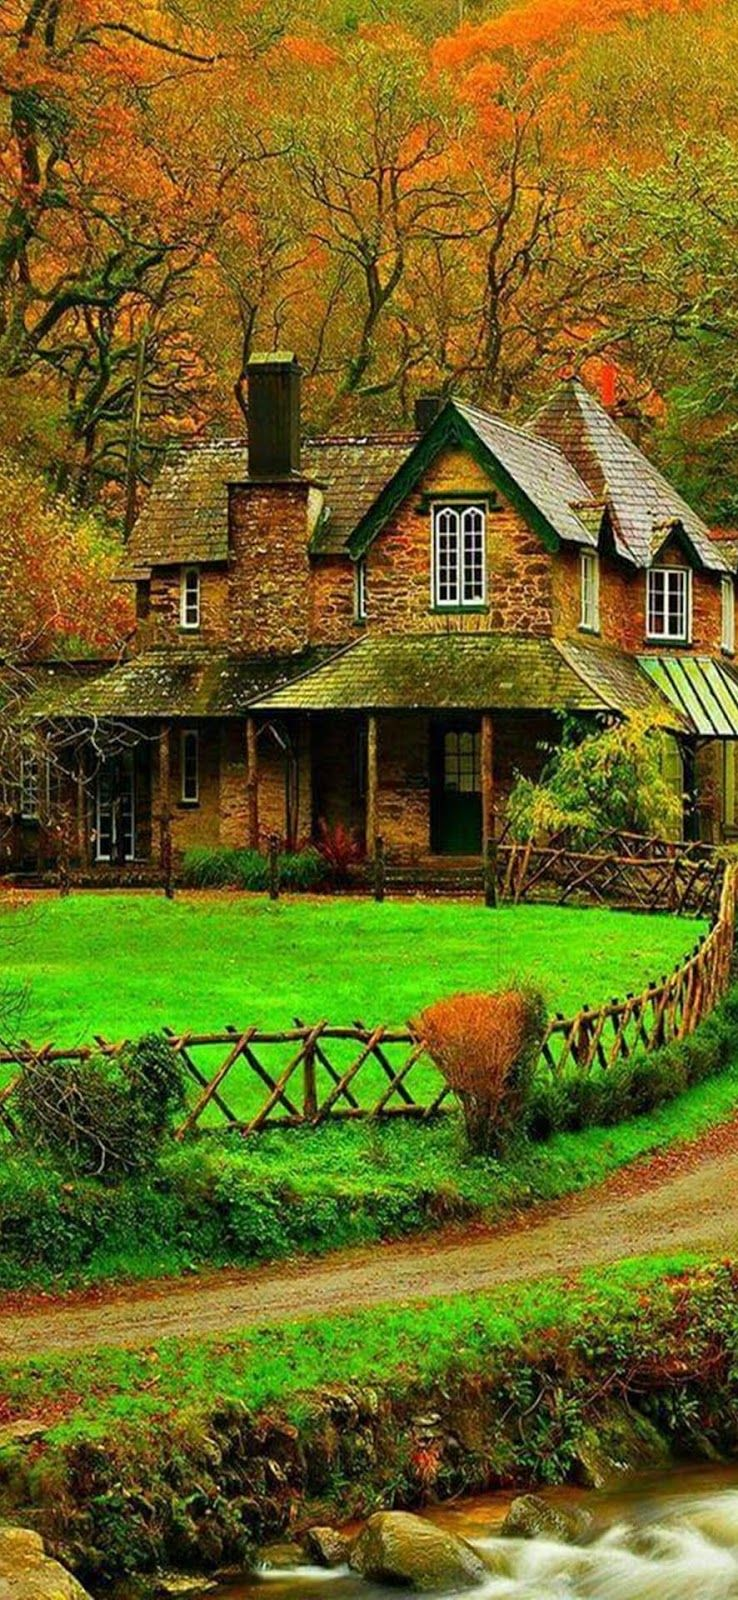 Pin By Usman Ali On Senales In 2020 Beautiful Homes Scenery Beautiful Places